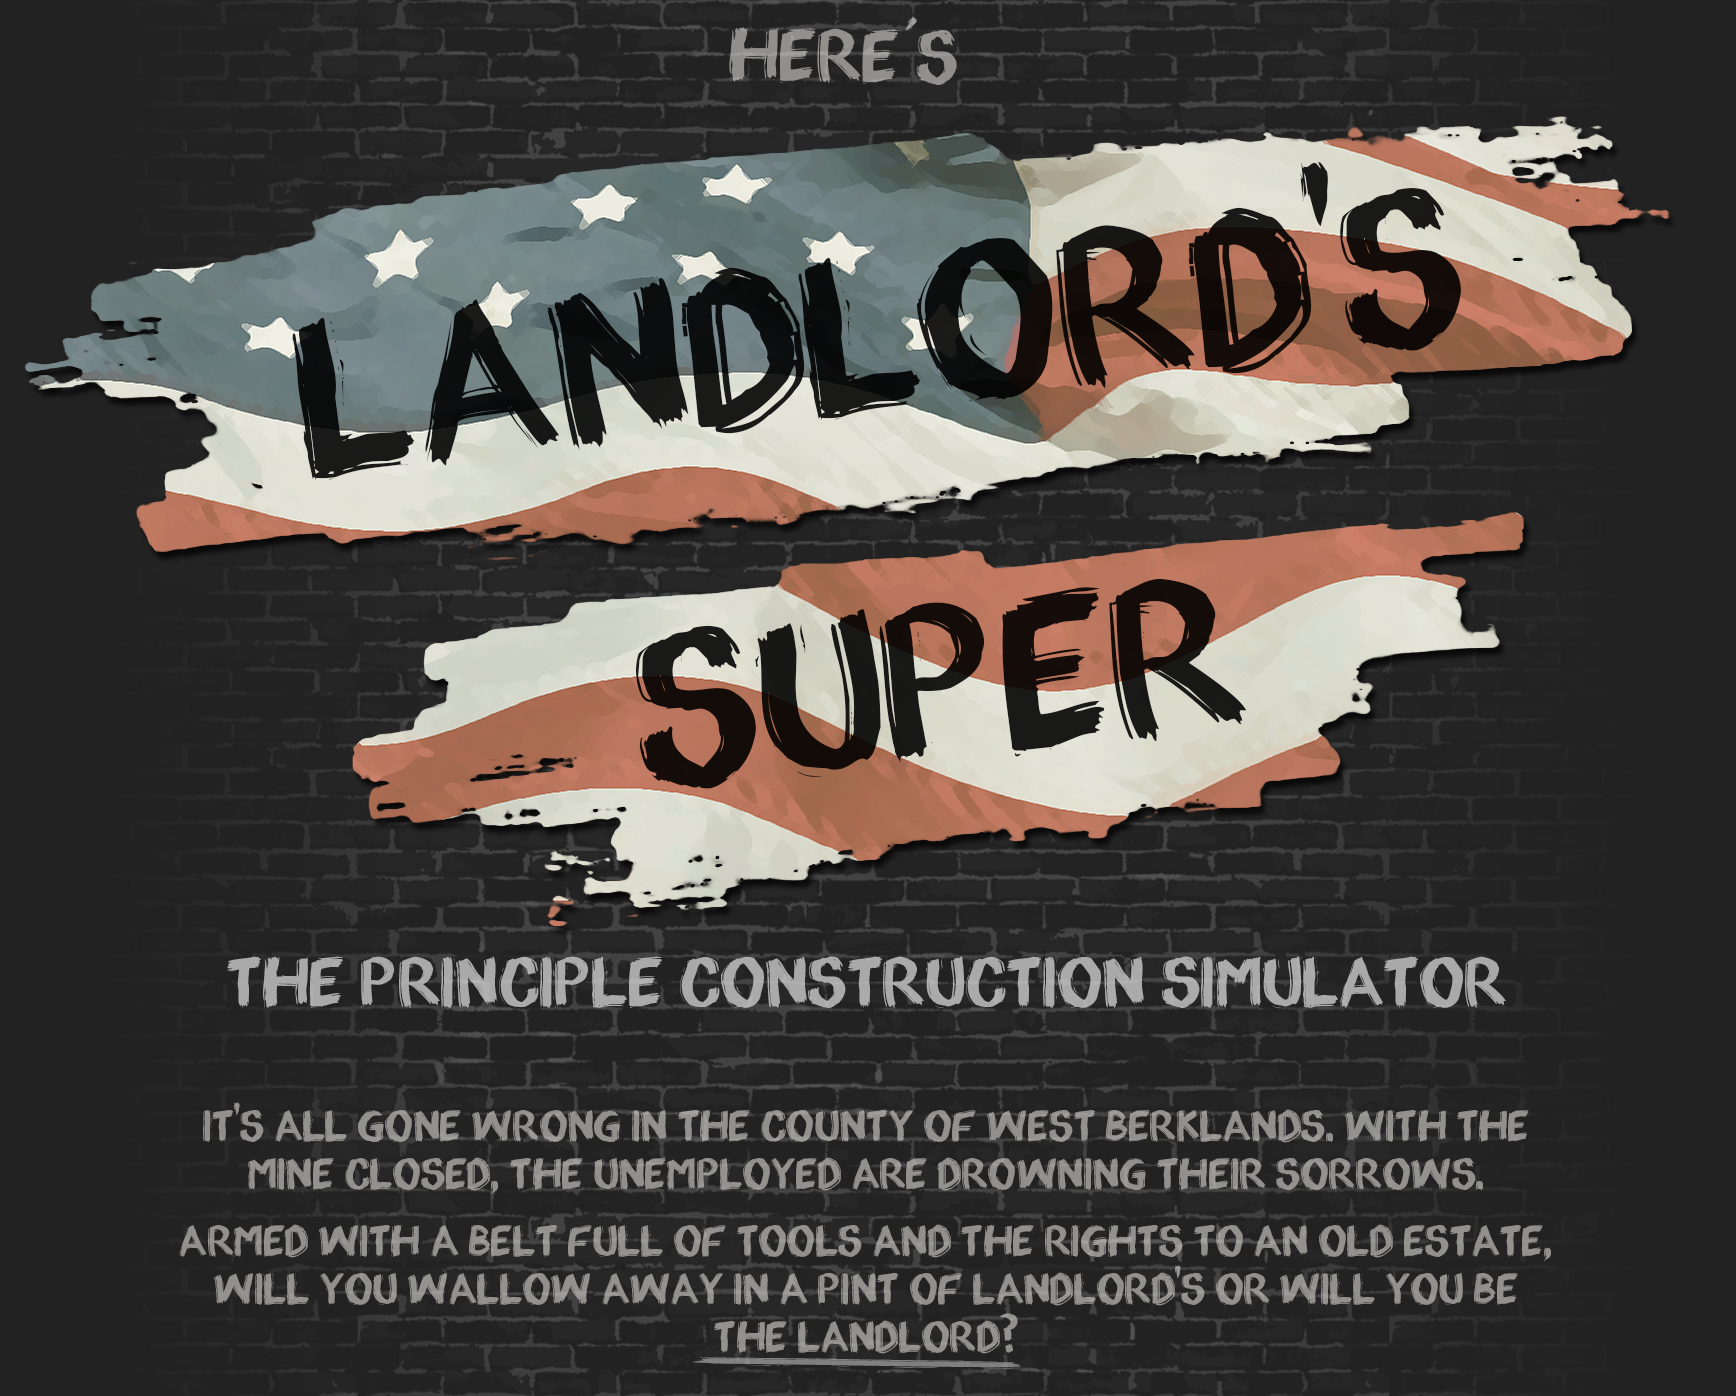 LandlordsSuper_US_03